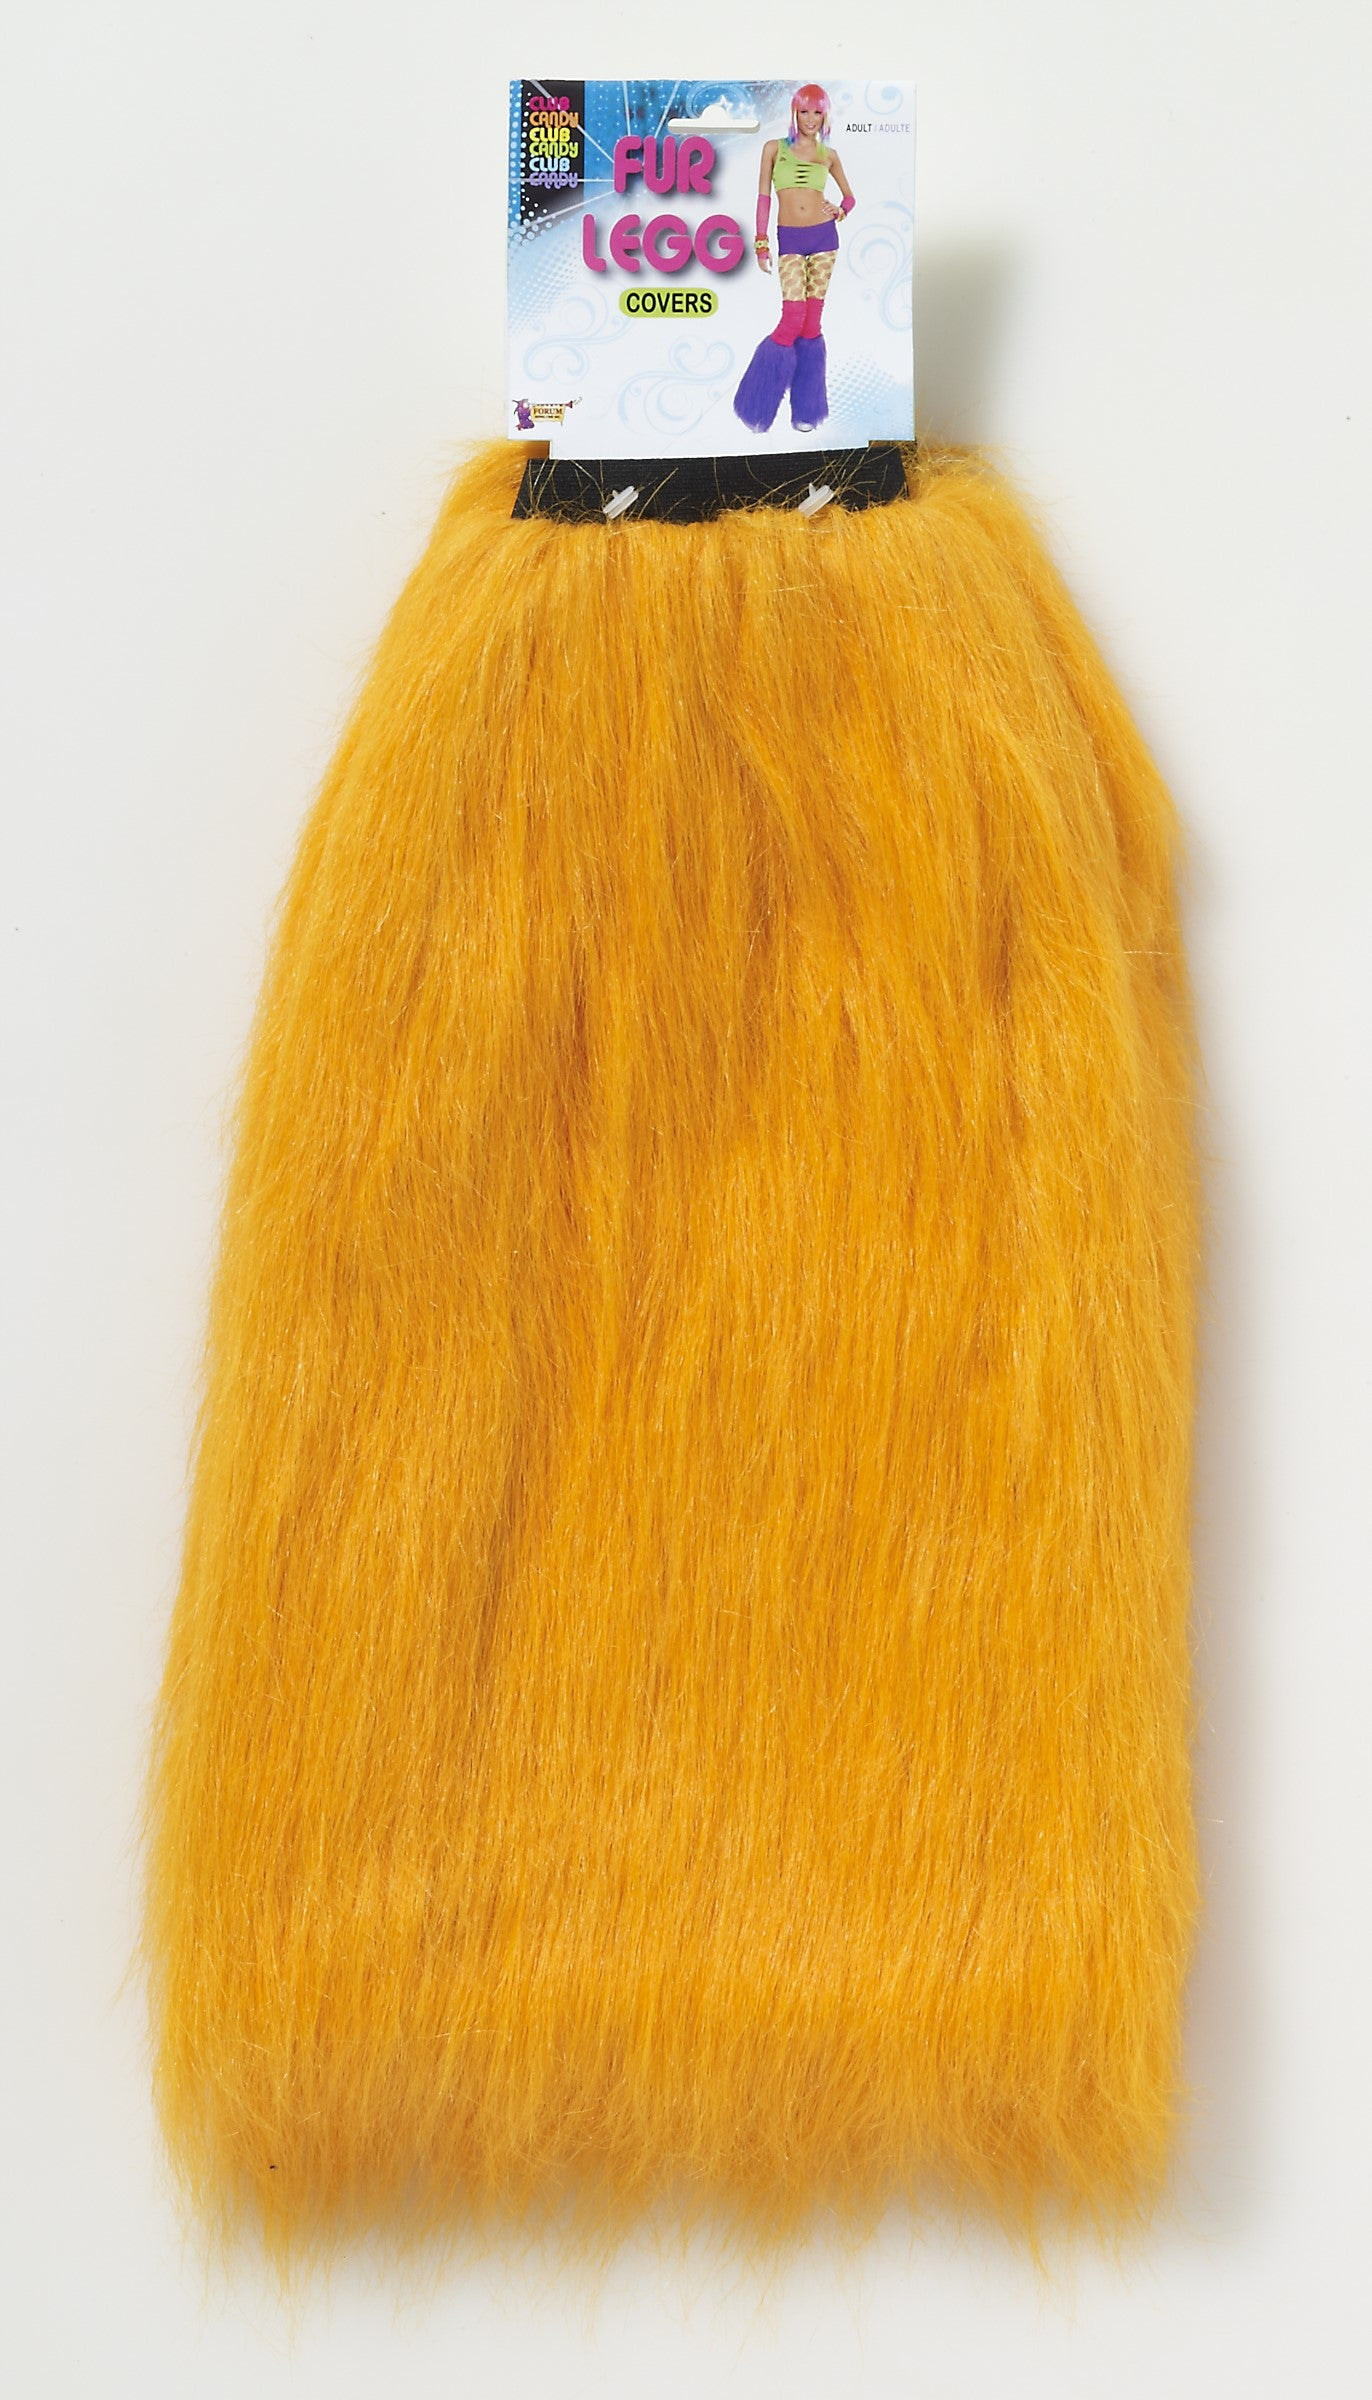 Club Candy Fur Leg Covers - Orange